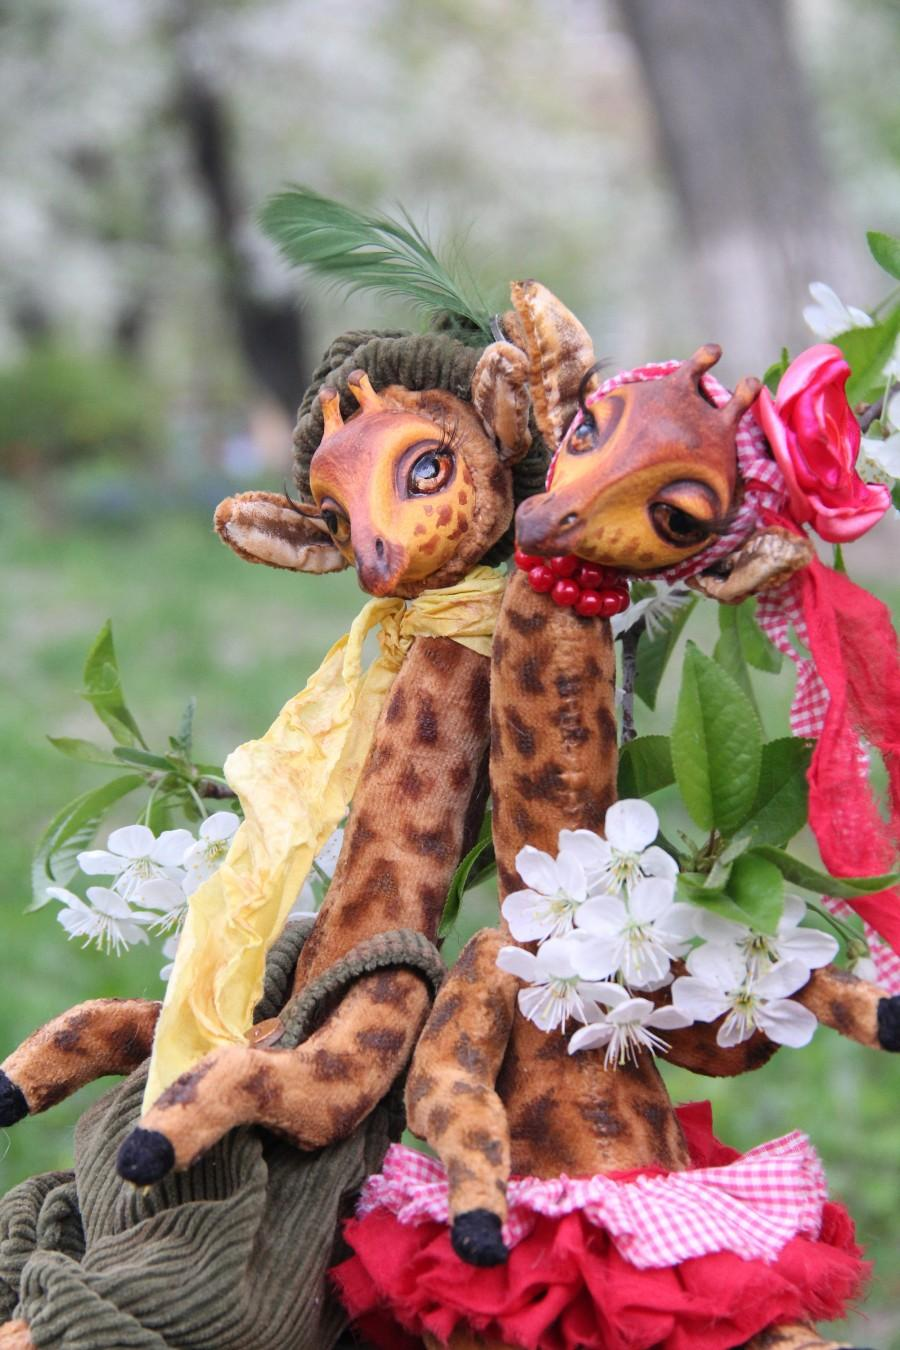 Boda - Art  Doll Teddy doll Giraffe George and Giselle. Height 11,5 inches (29 cm).